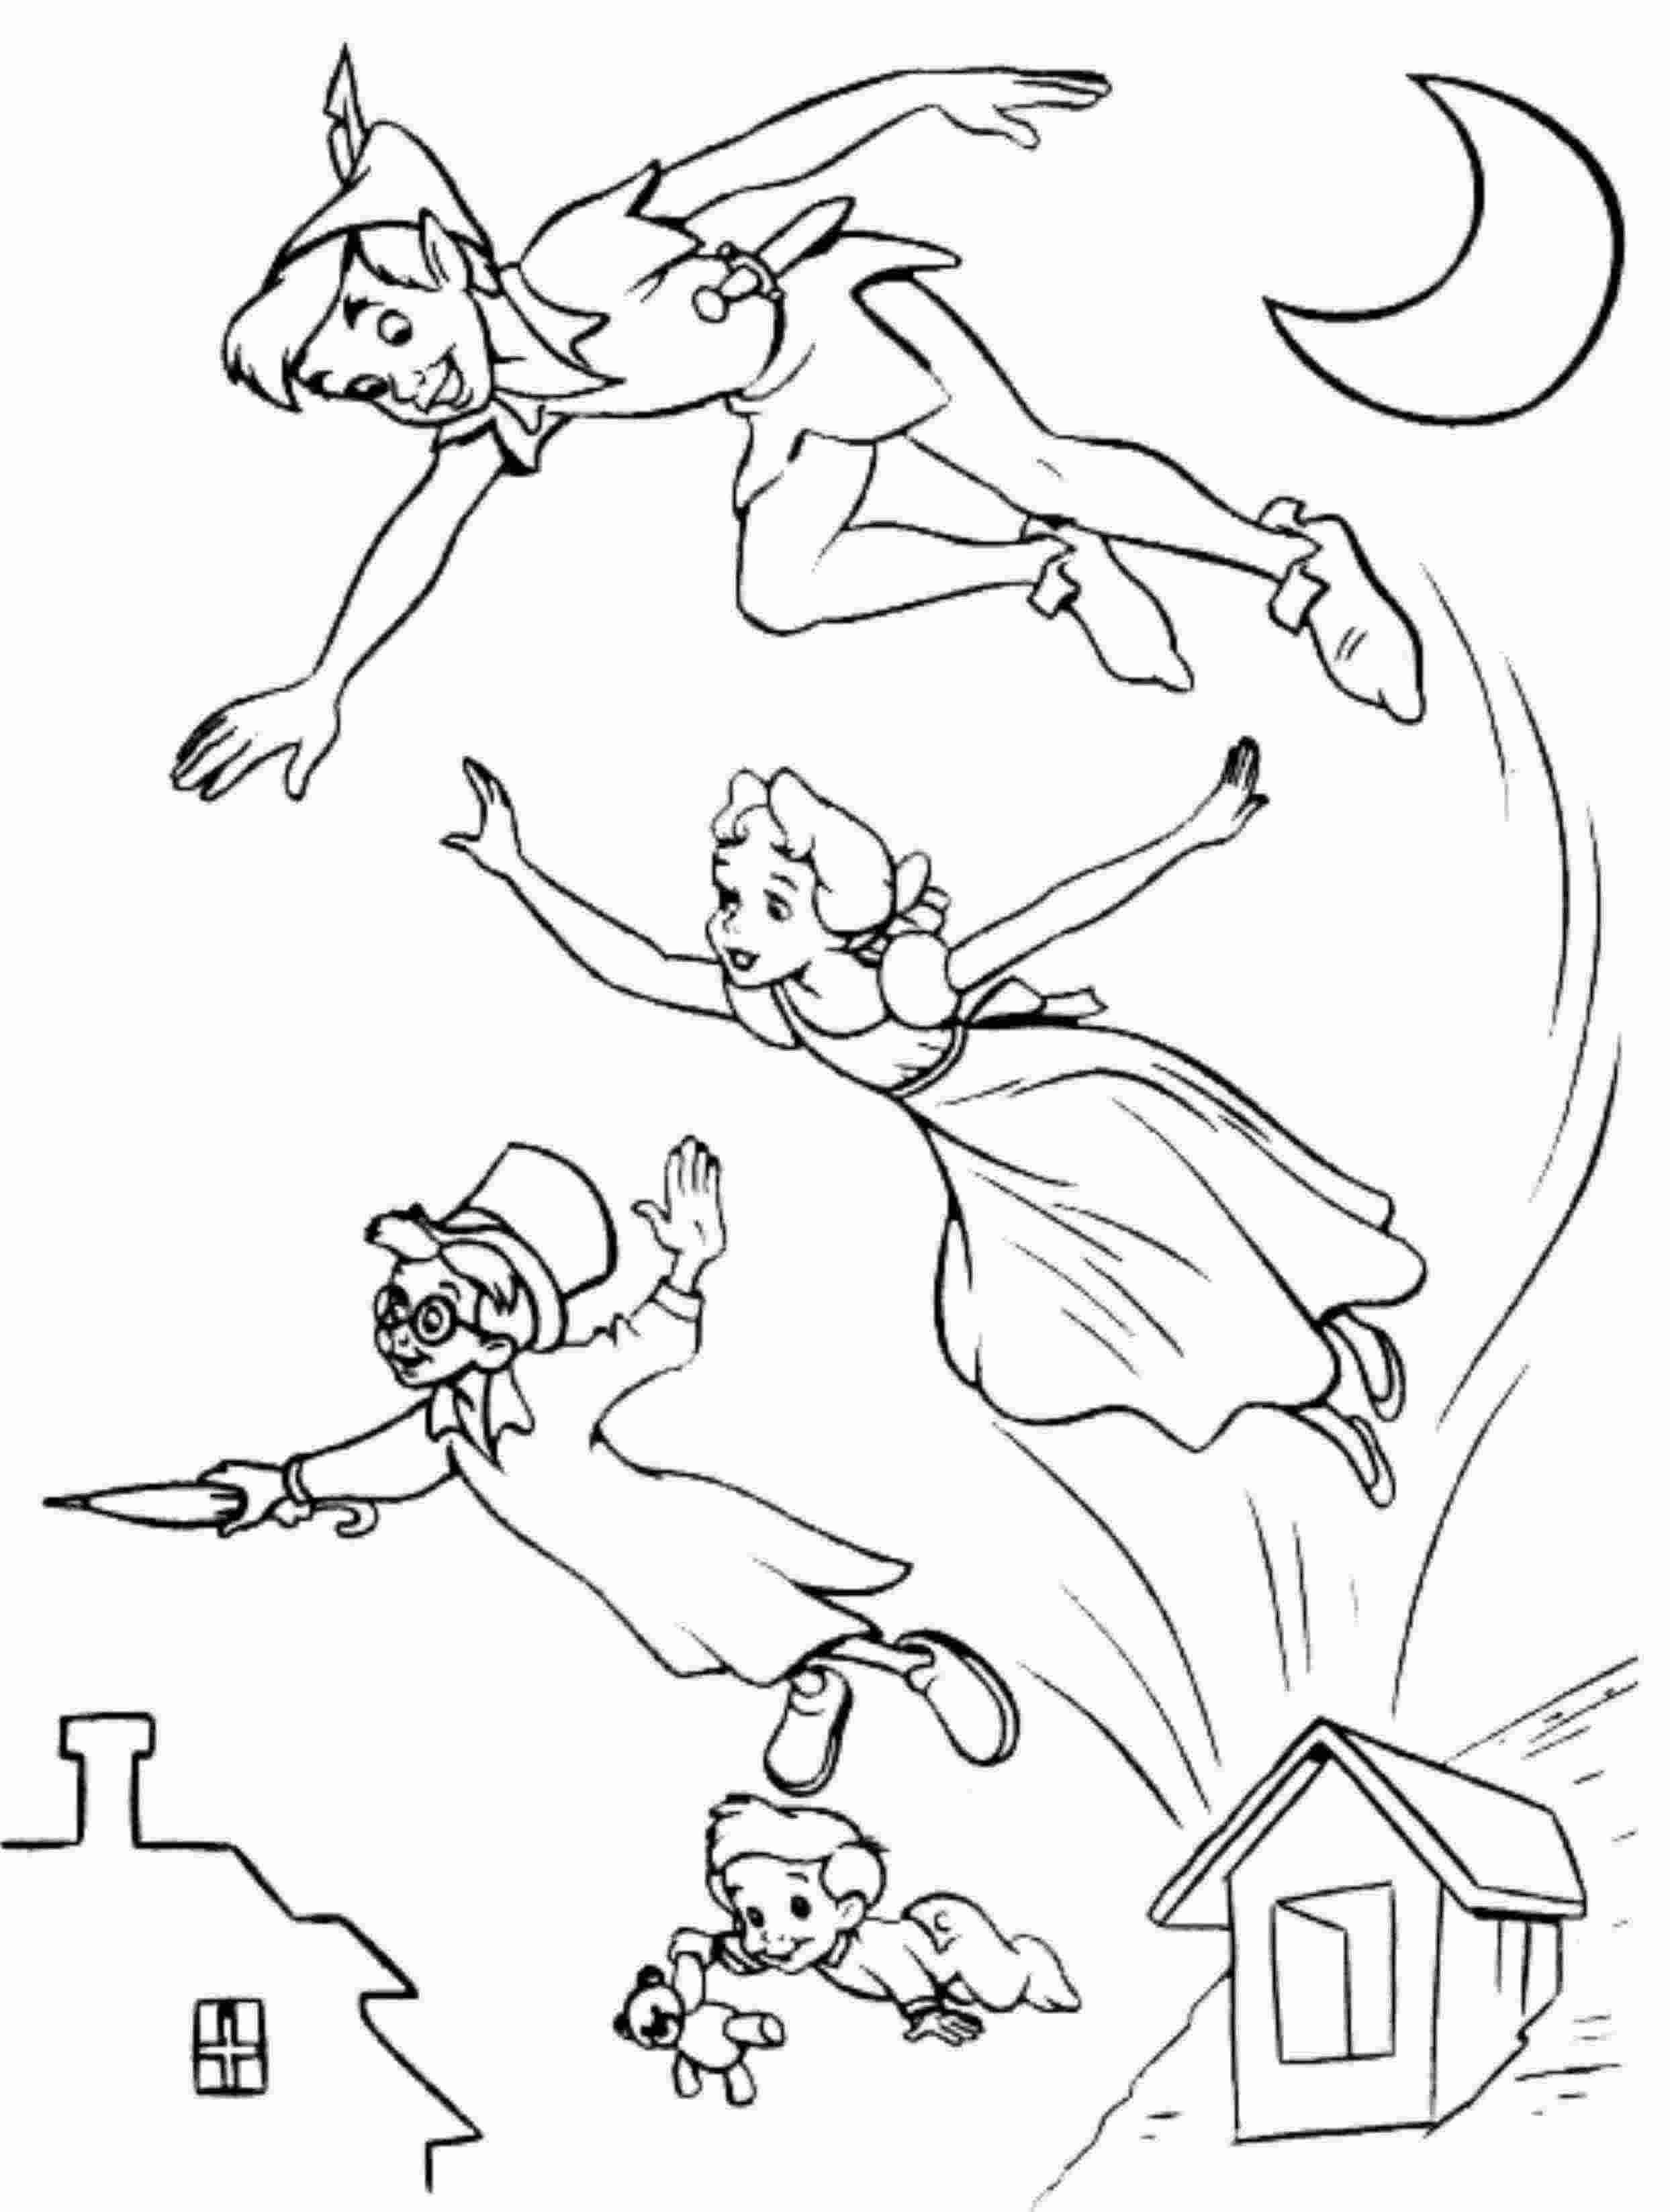 Peter Pan Childrens Free Coloring Pages Peter Pan Flying Coloring Pages Coloring Home Pages Coloring Peter Pan Childrens Free 89402